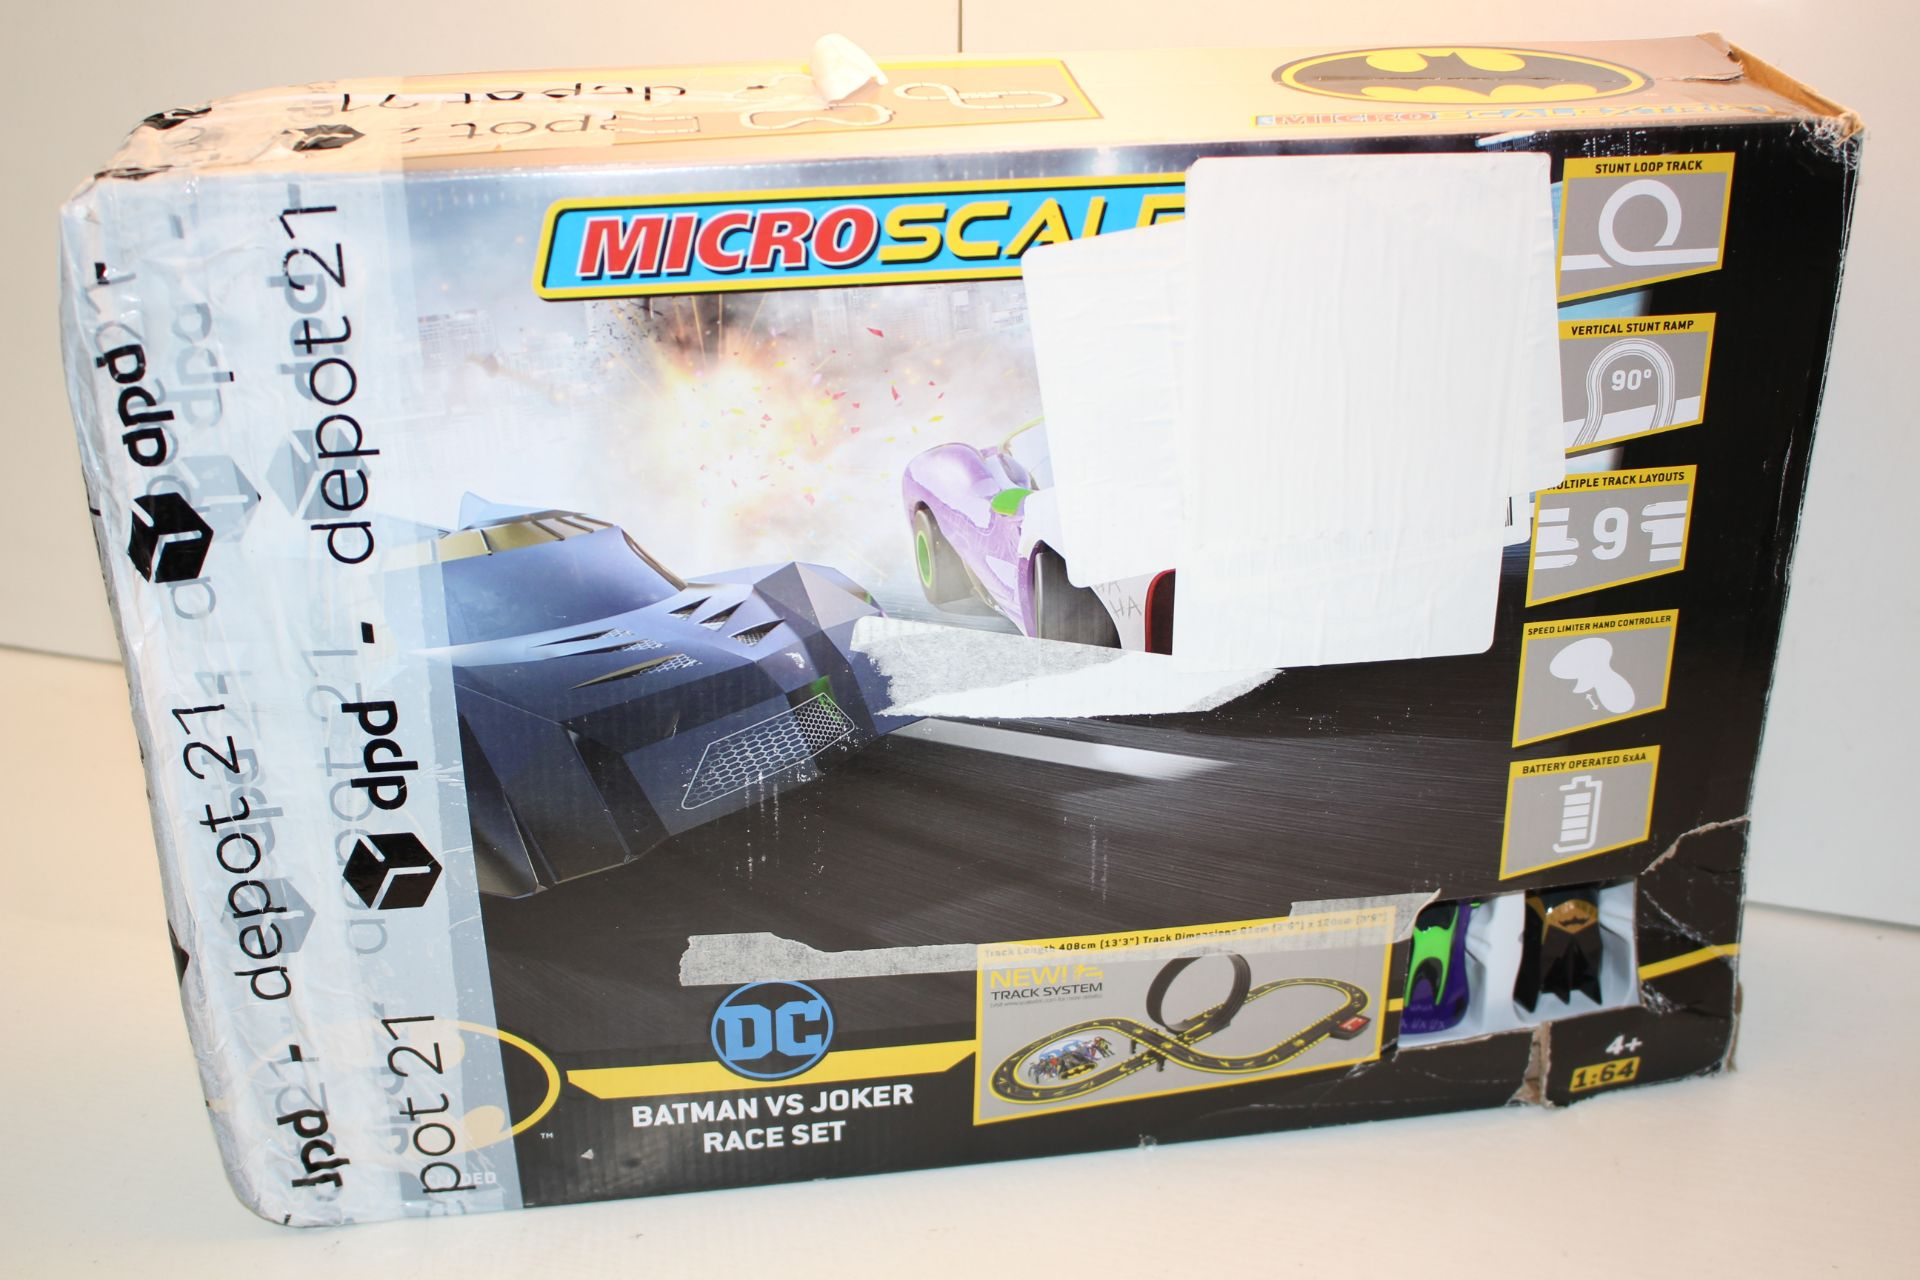 BOXED MICRO SCALEXTRIC DC BATMAN VS JOKER RACER SET RRP £69.00Condition ReportAppraisal Available on